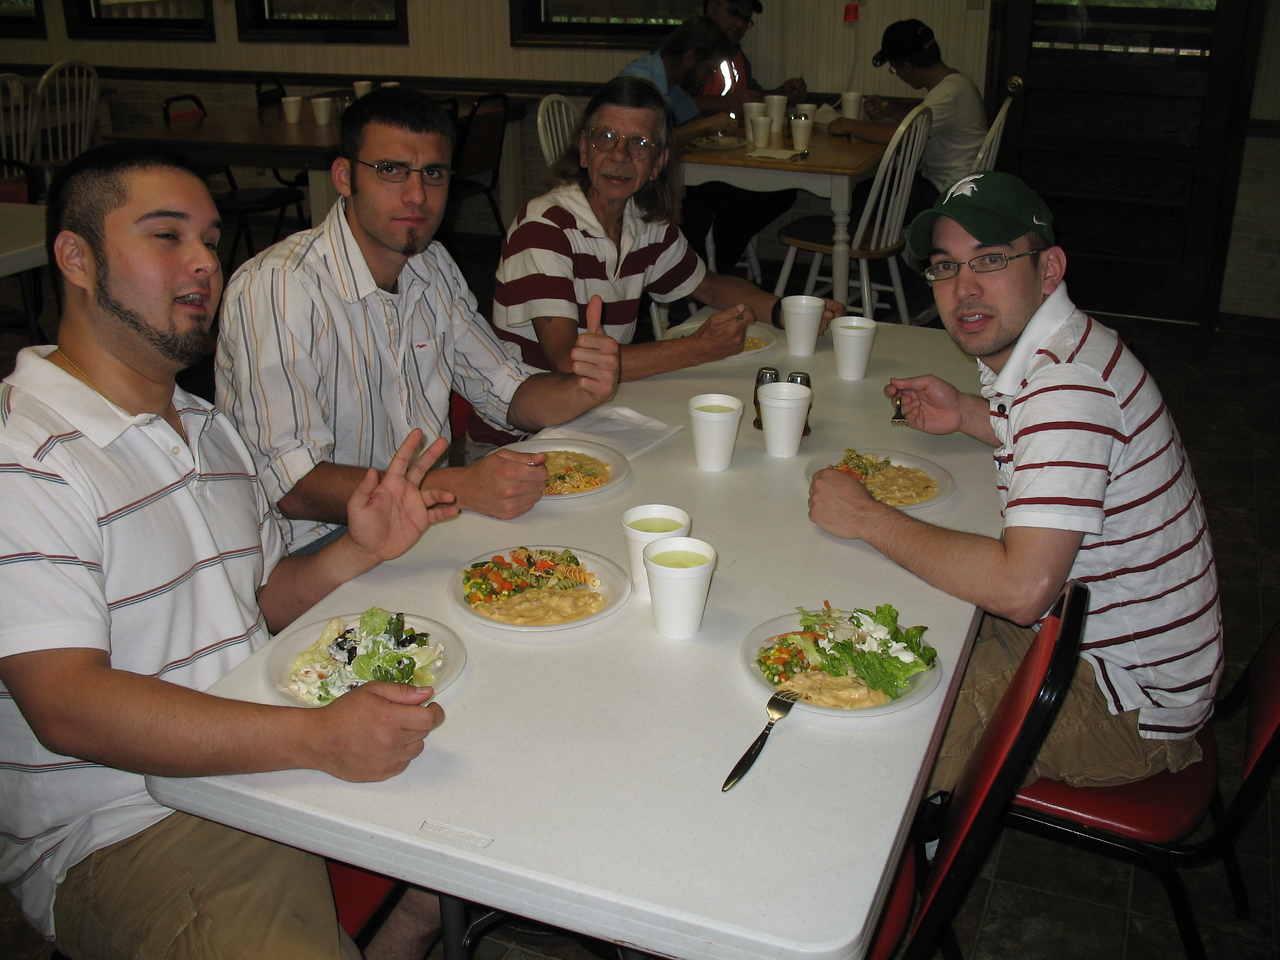 Jay Burda, Sean Turner, Patrick Burda, and Greg Burda Chowin Down